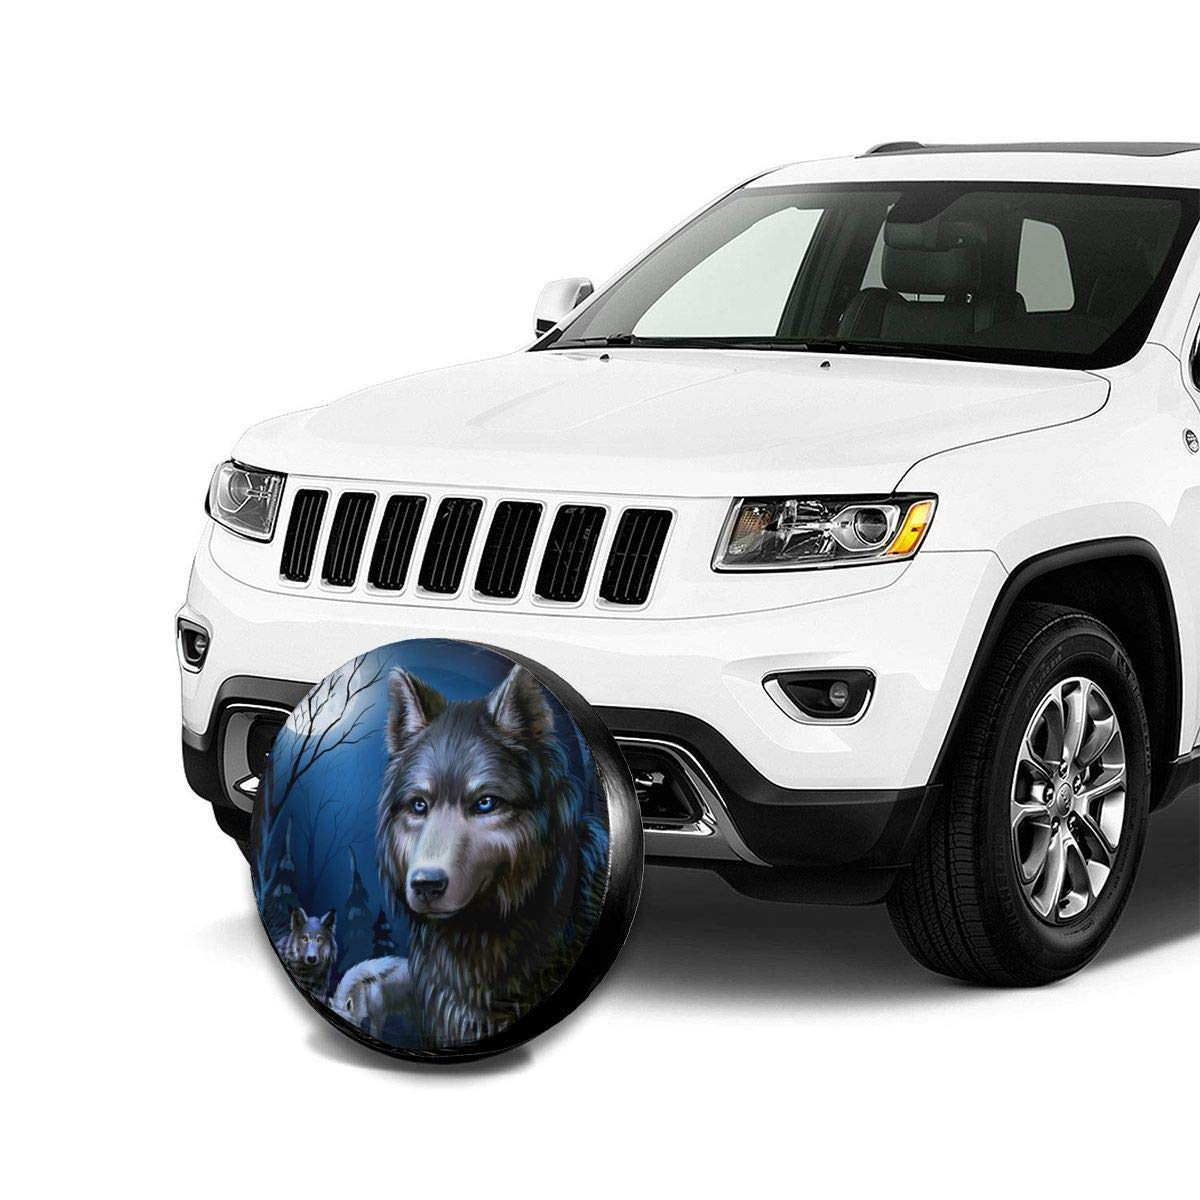 Moon Wolf Spare Tire Cover Wheel Cover Dust-Proof Waterproof Tire Cover Protection for Trailer RV SUV Truck Camper Travel 14 15 16 17